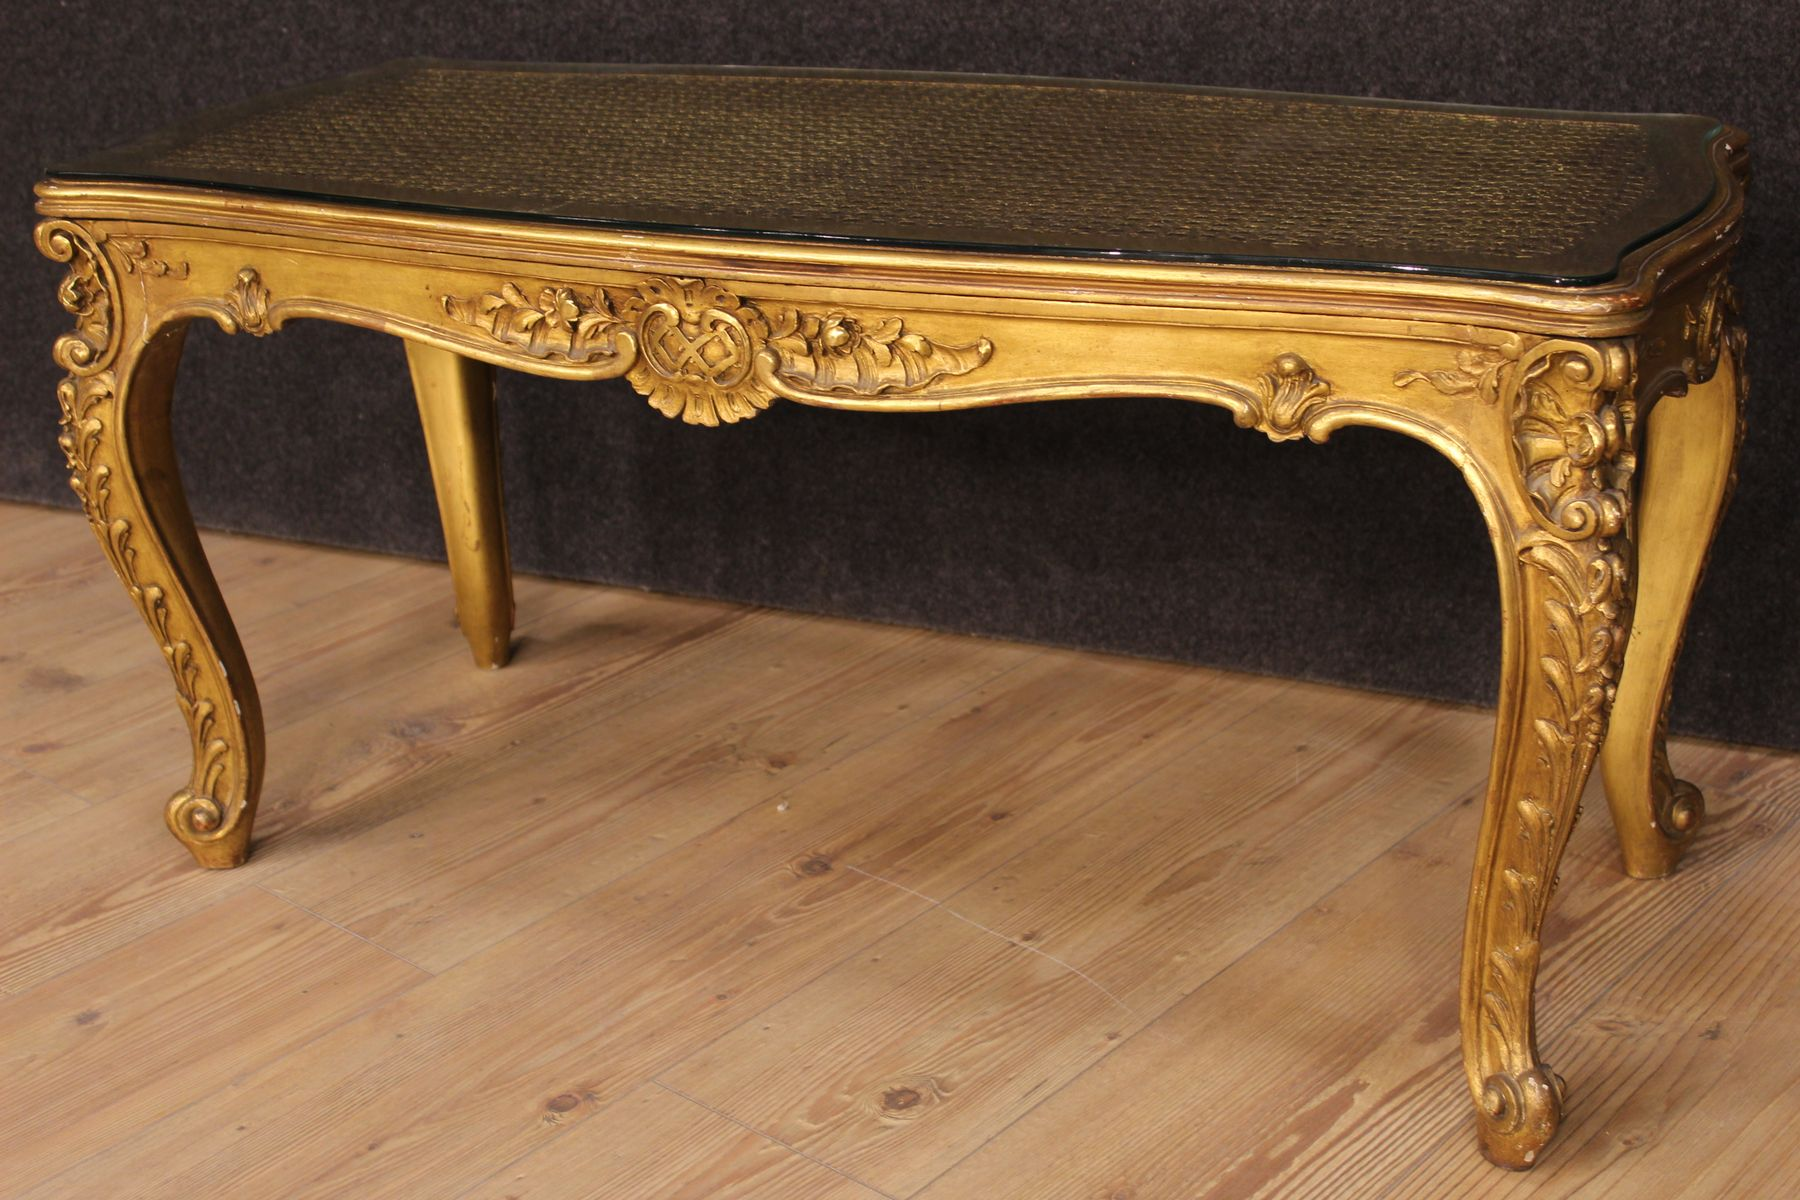 Vintage Italian Ornate Golden Coffee Table For Sale At Pamono